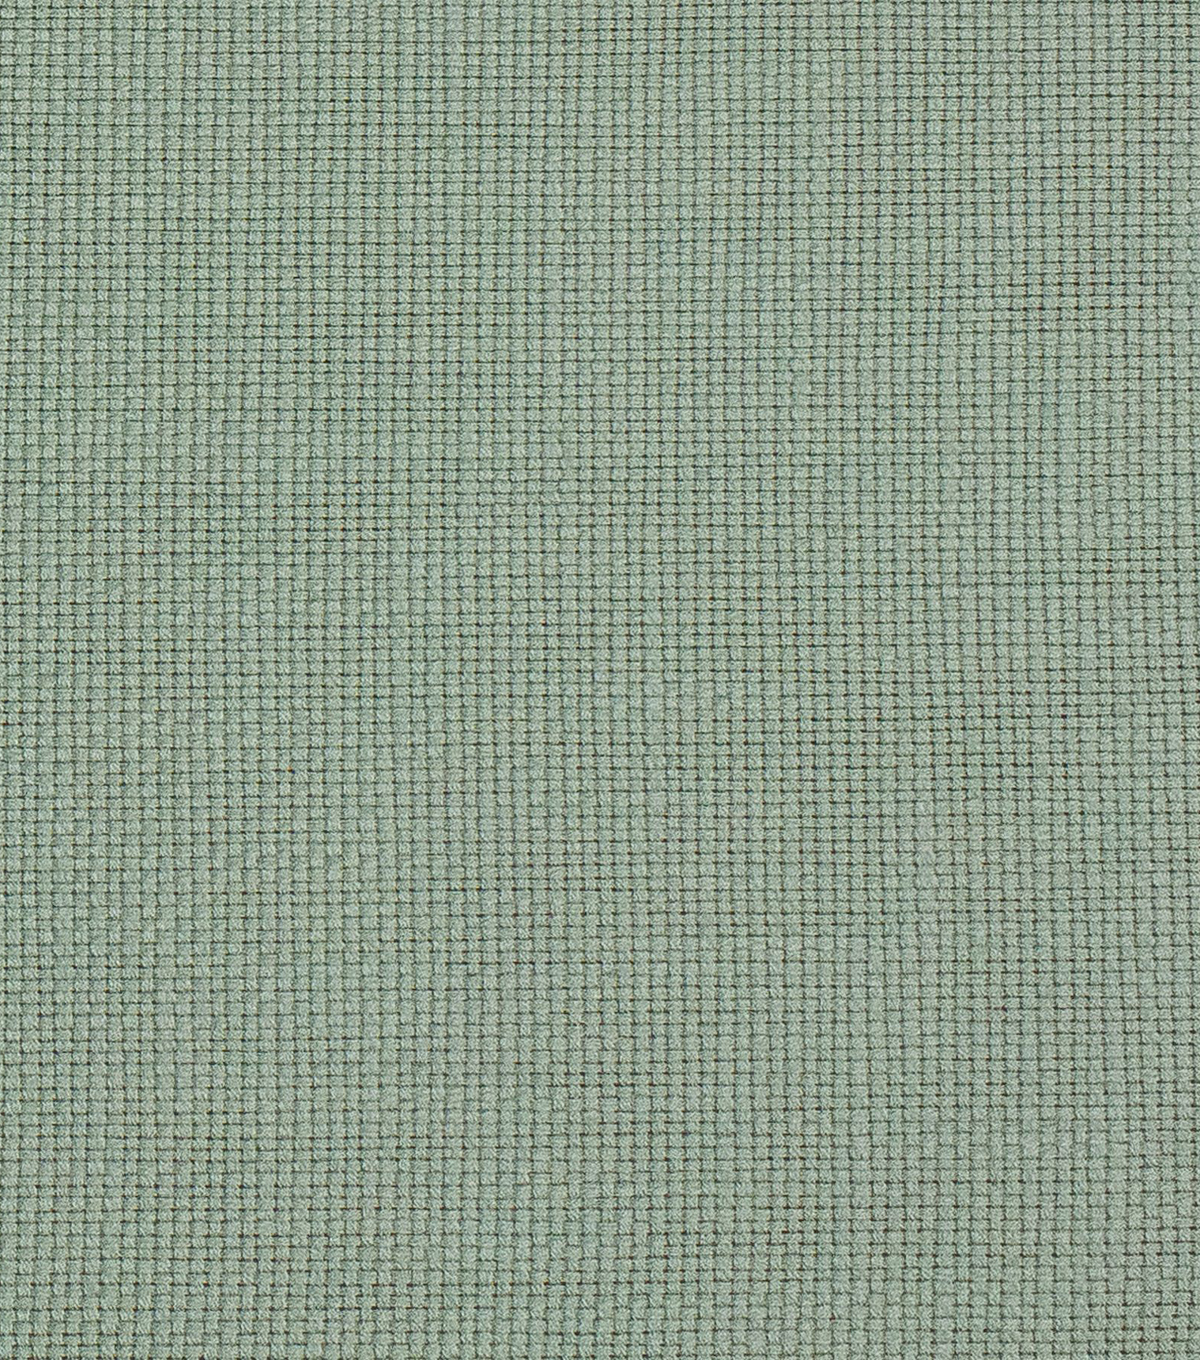 Home Decor 8\u0022x8\u0022 Fabric Swatch-Elite Olympia Seafoam